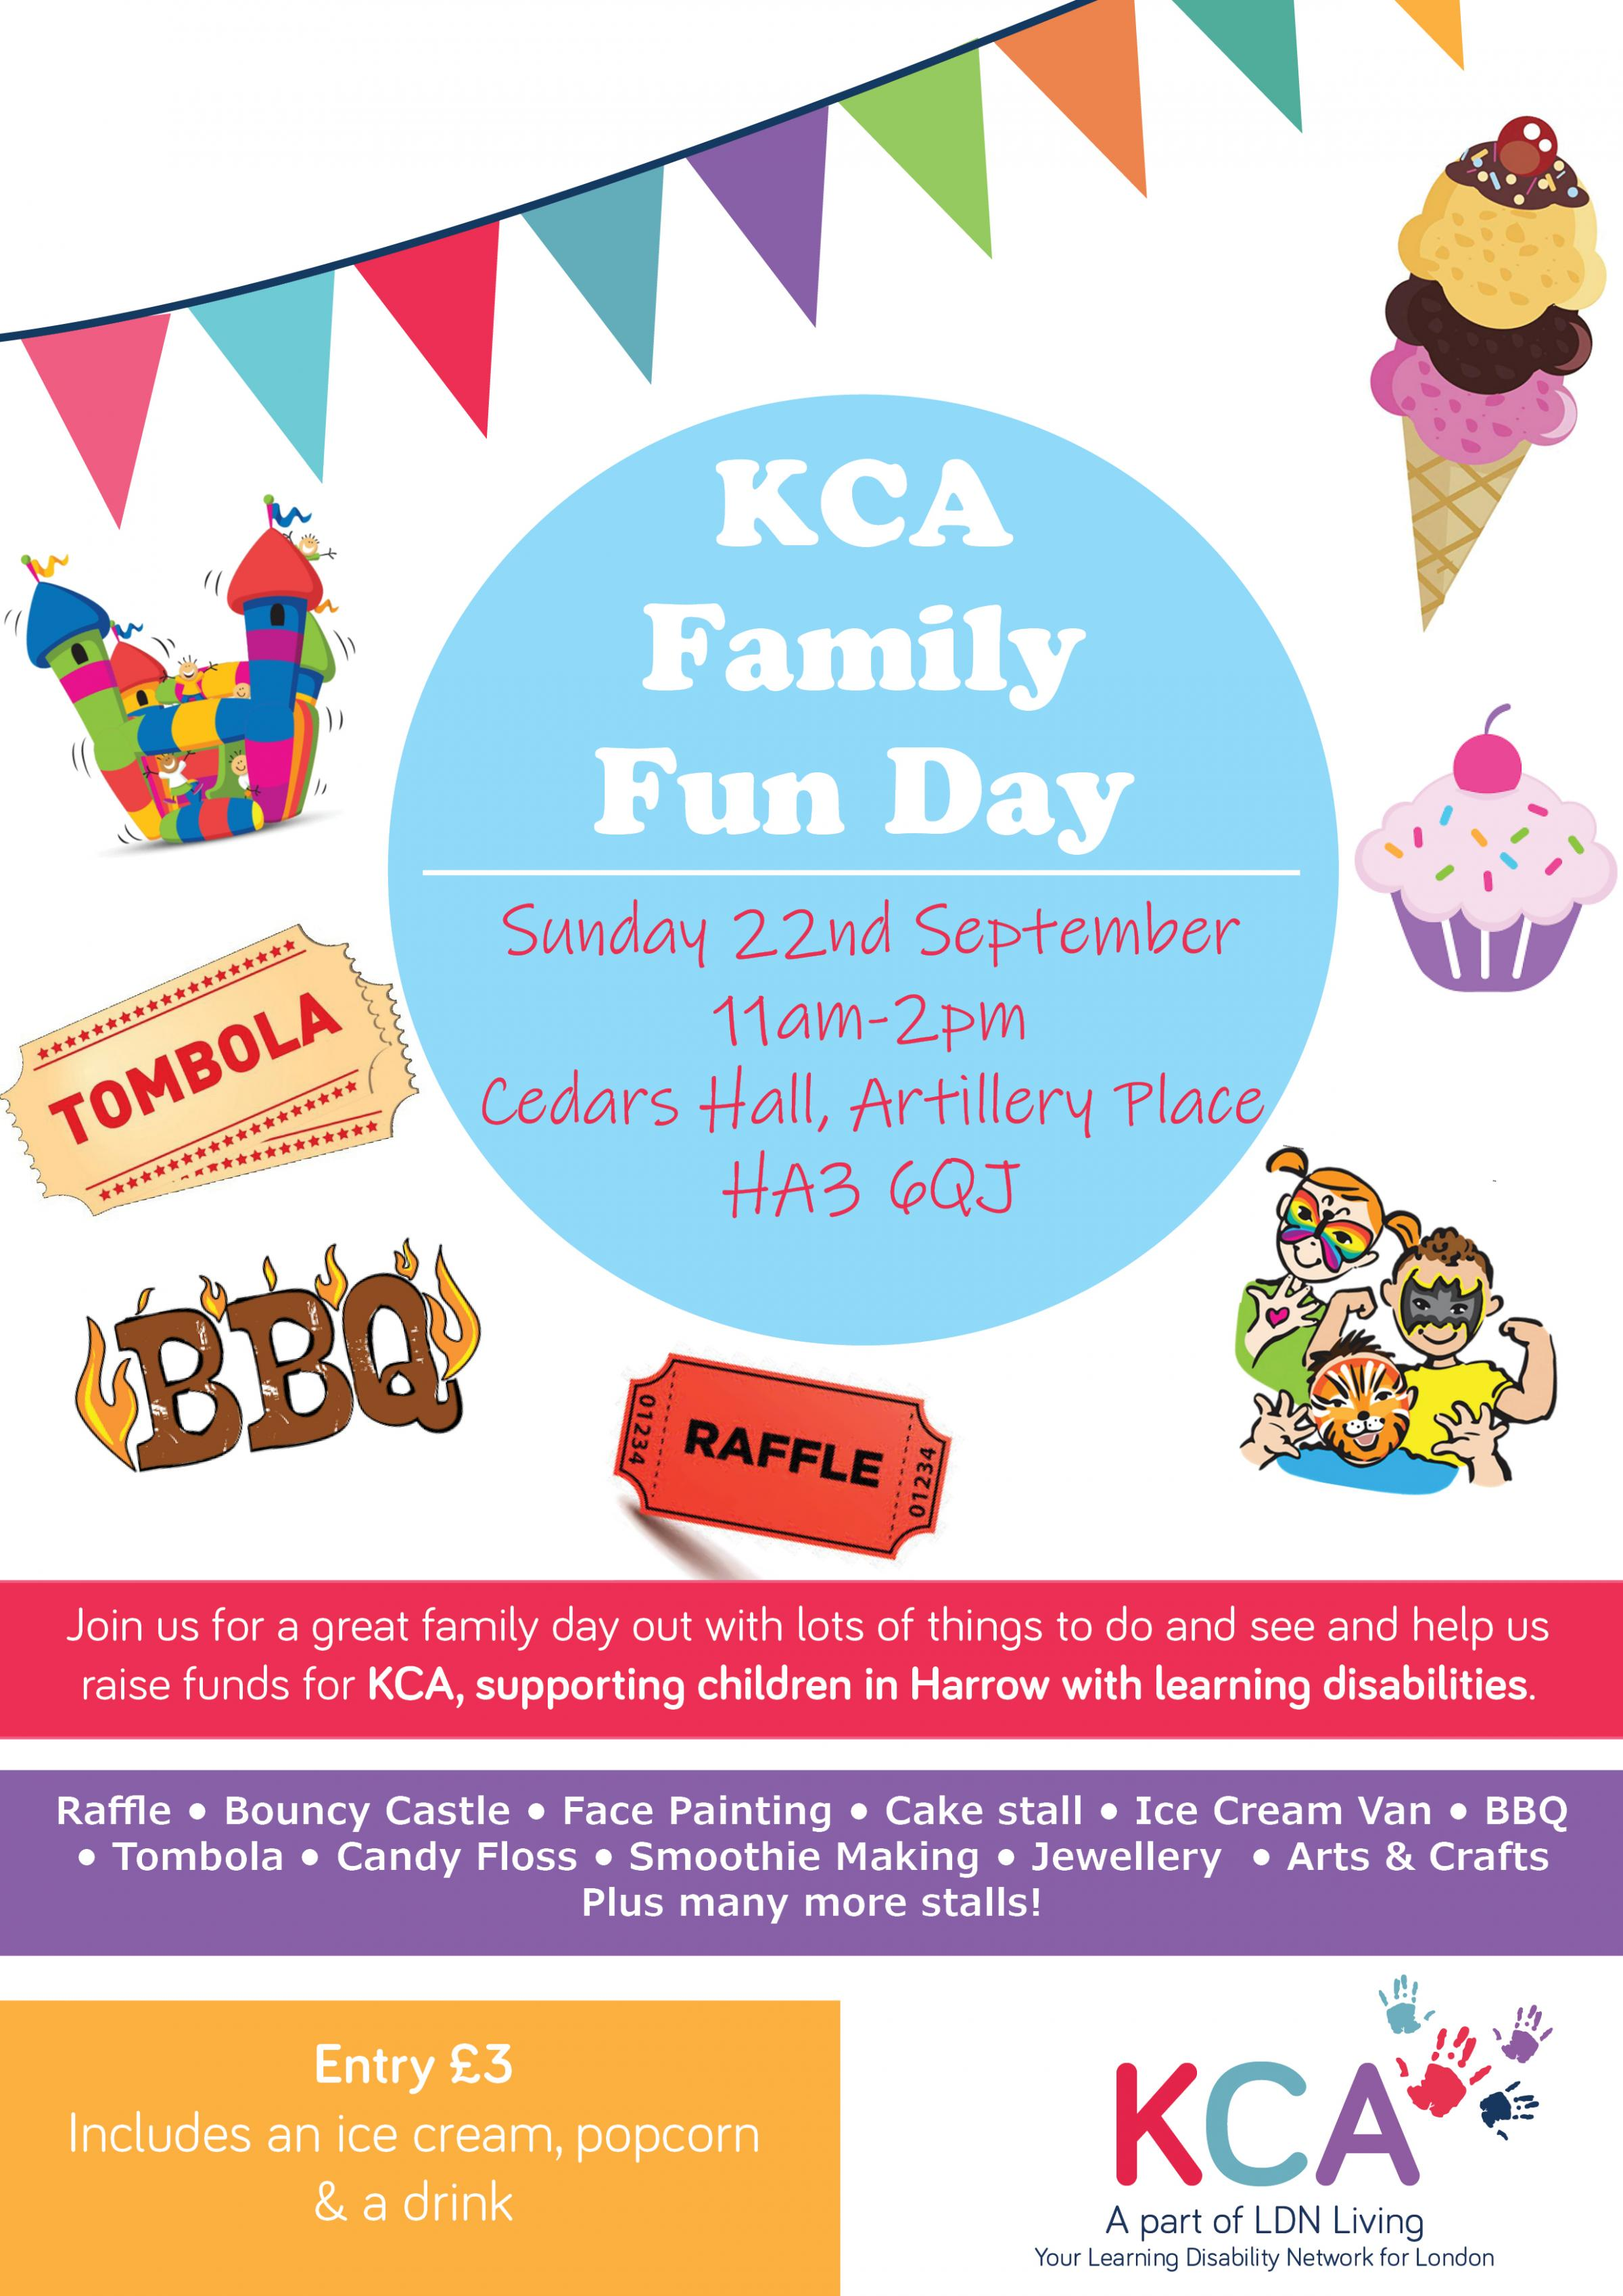 KCA Family Fun Day